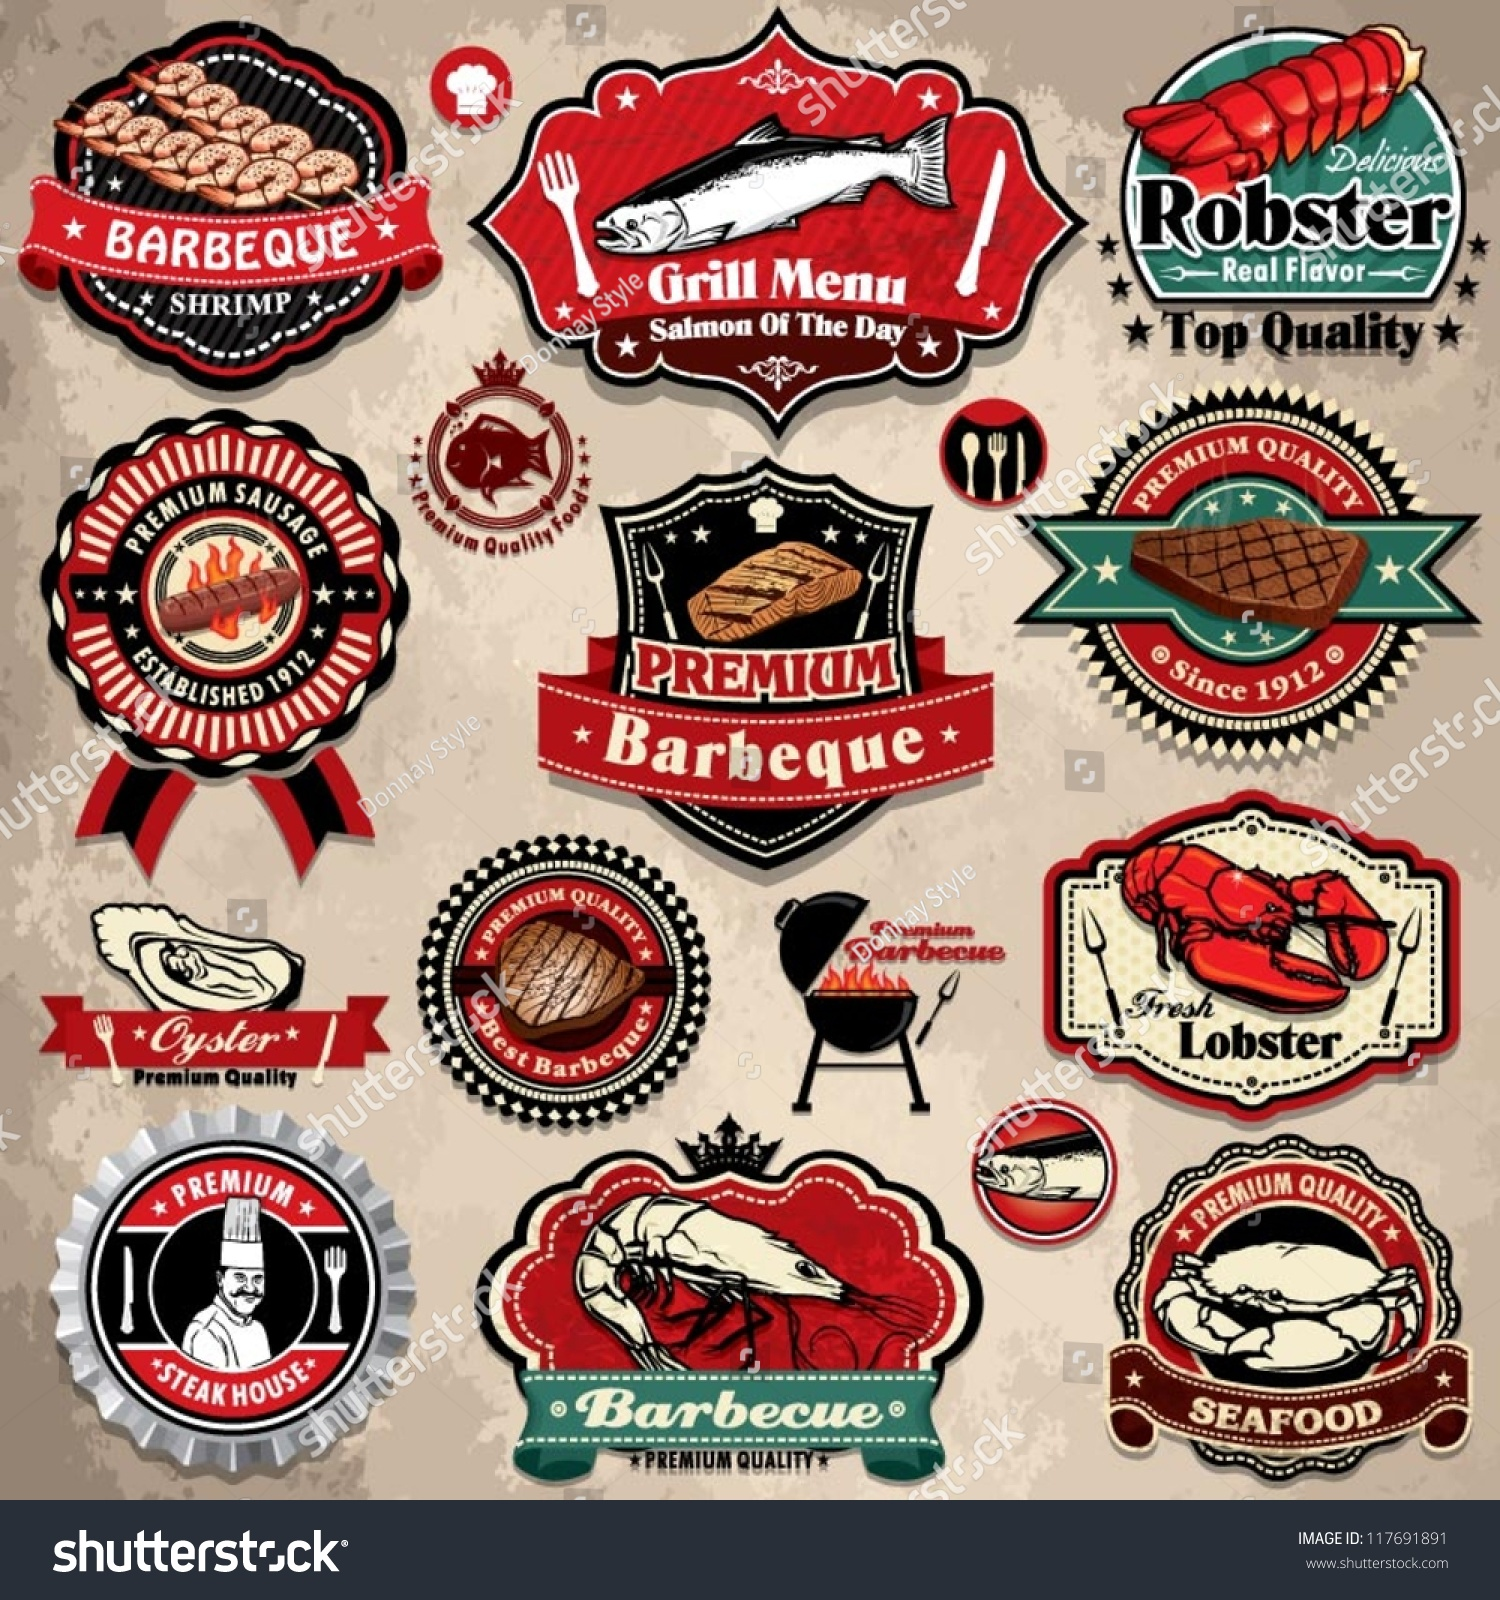 bbq sauce label template - vintage bbq seafood steak labels icons stock vector